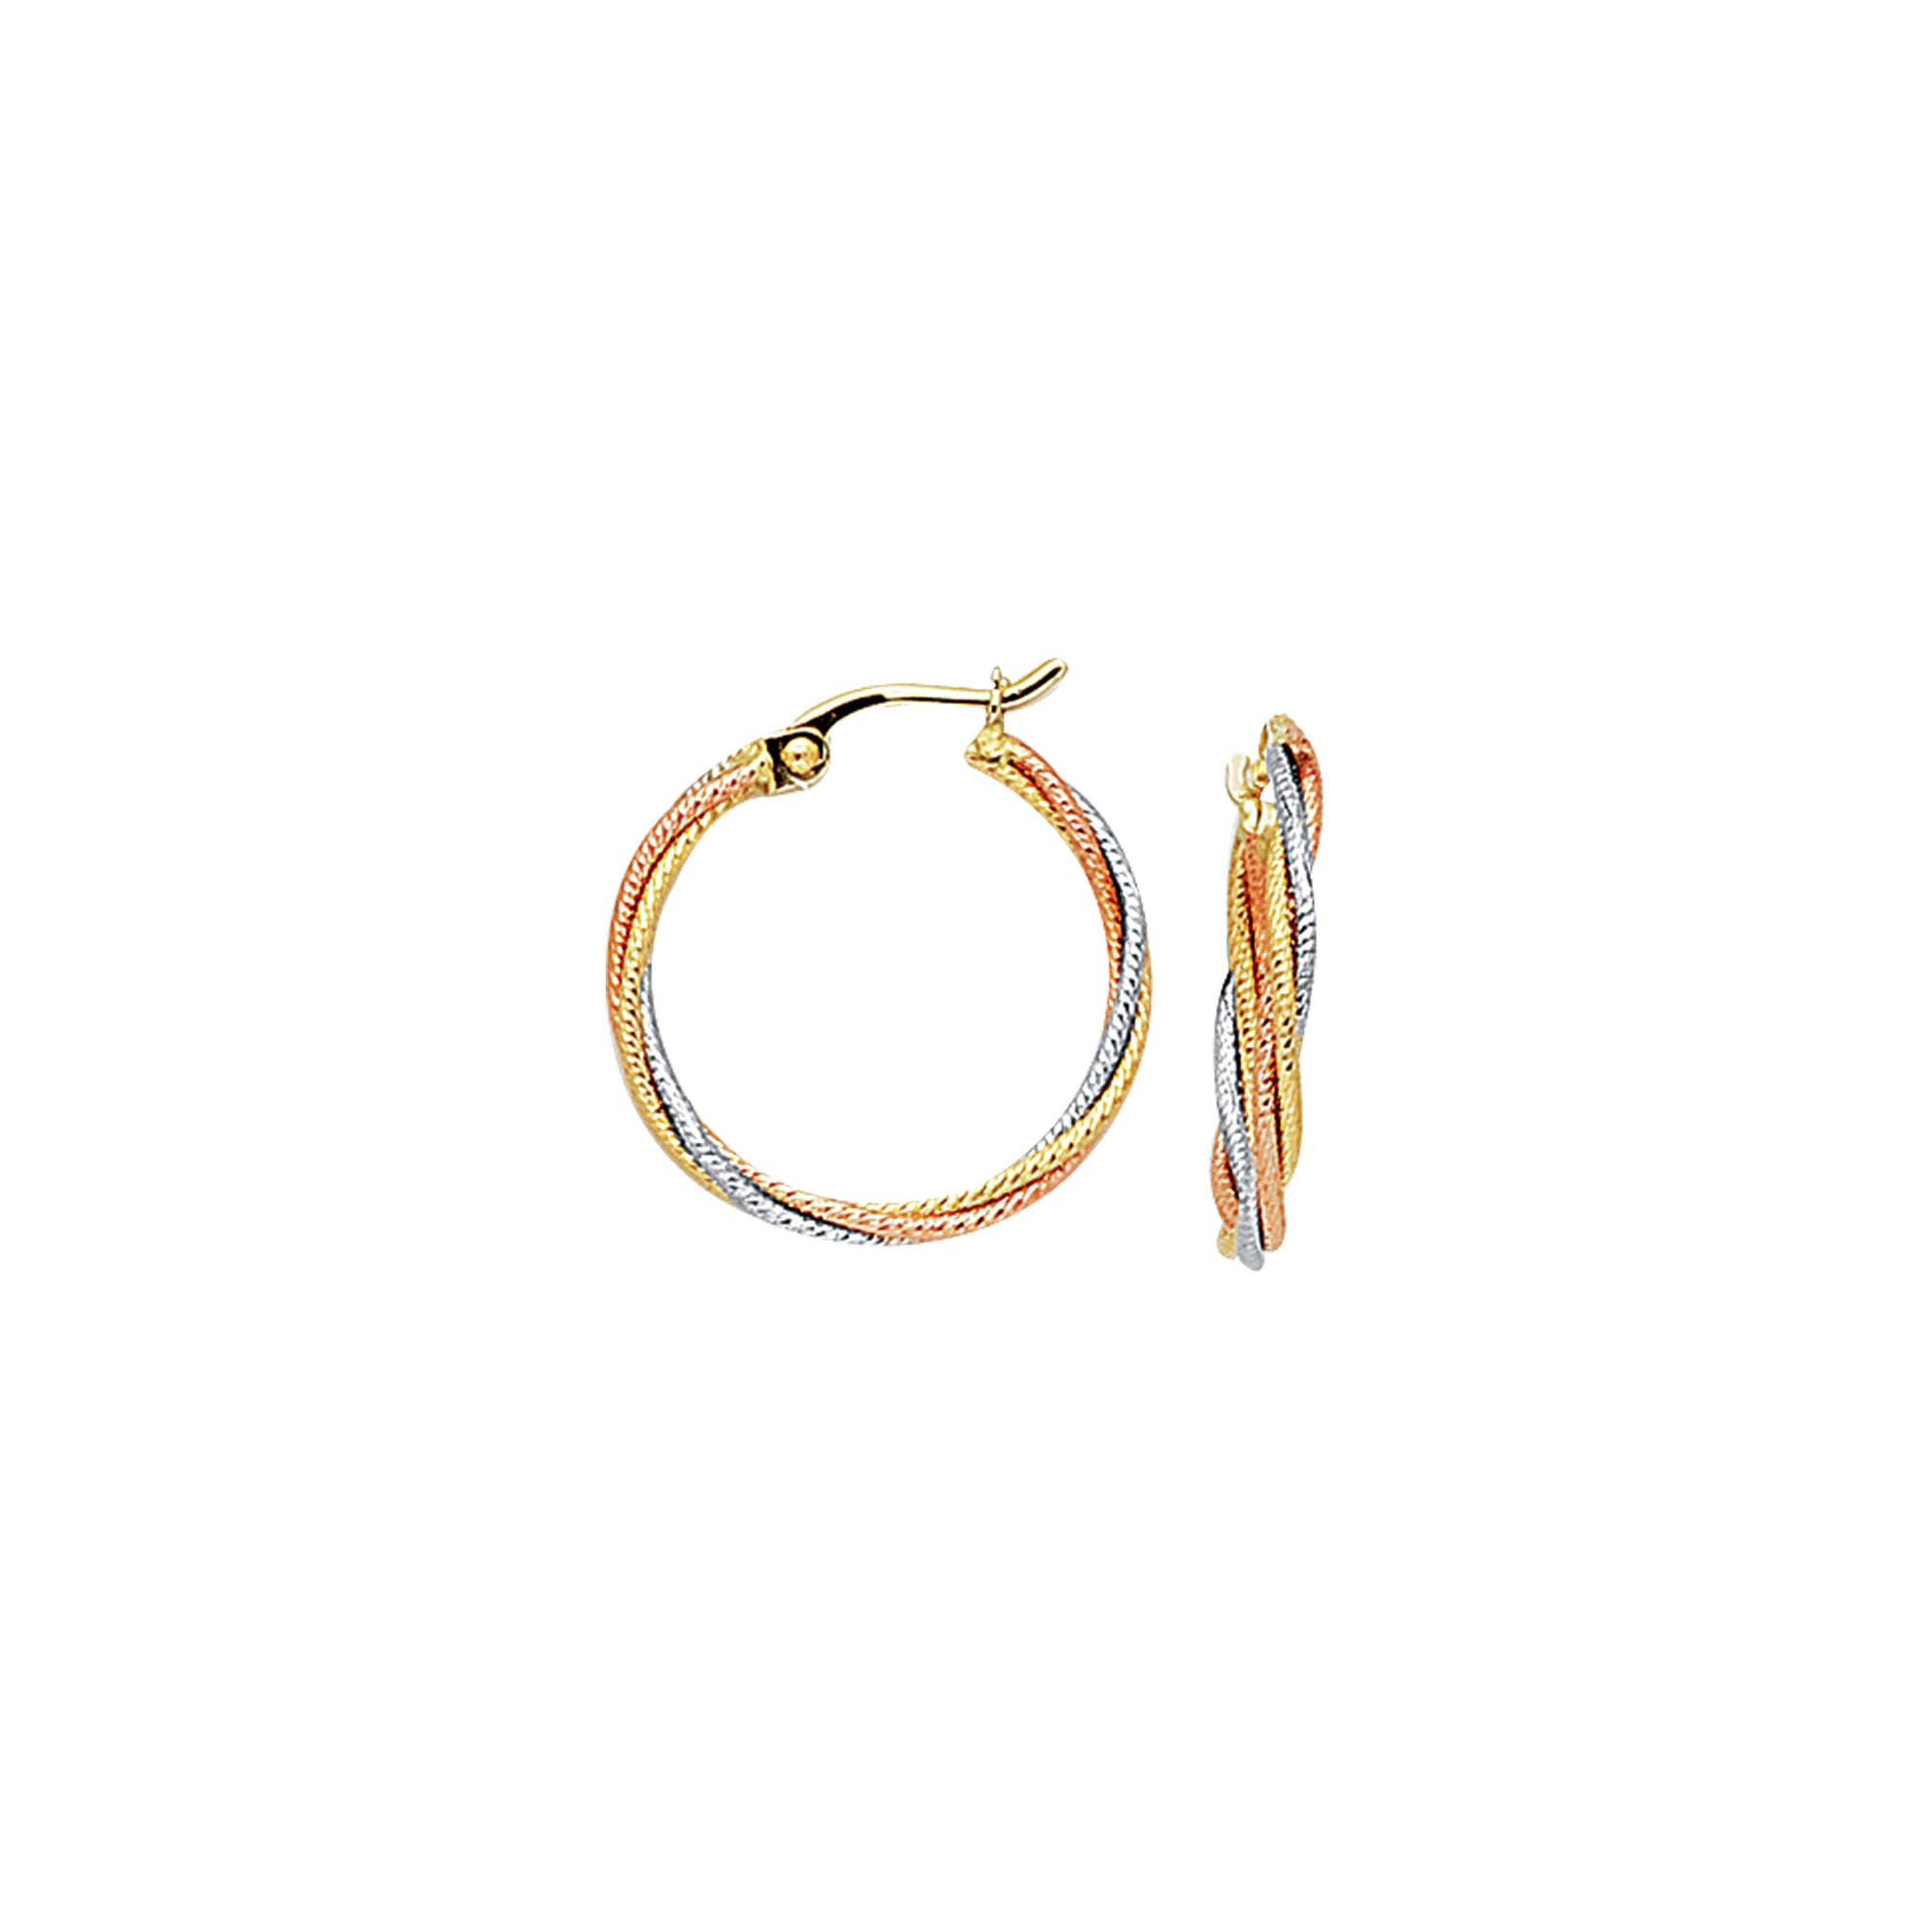 10K Gold Twist Hoop Earring